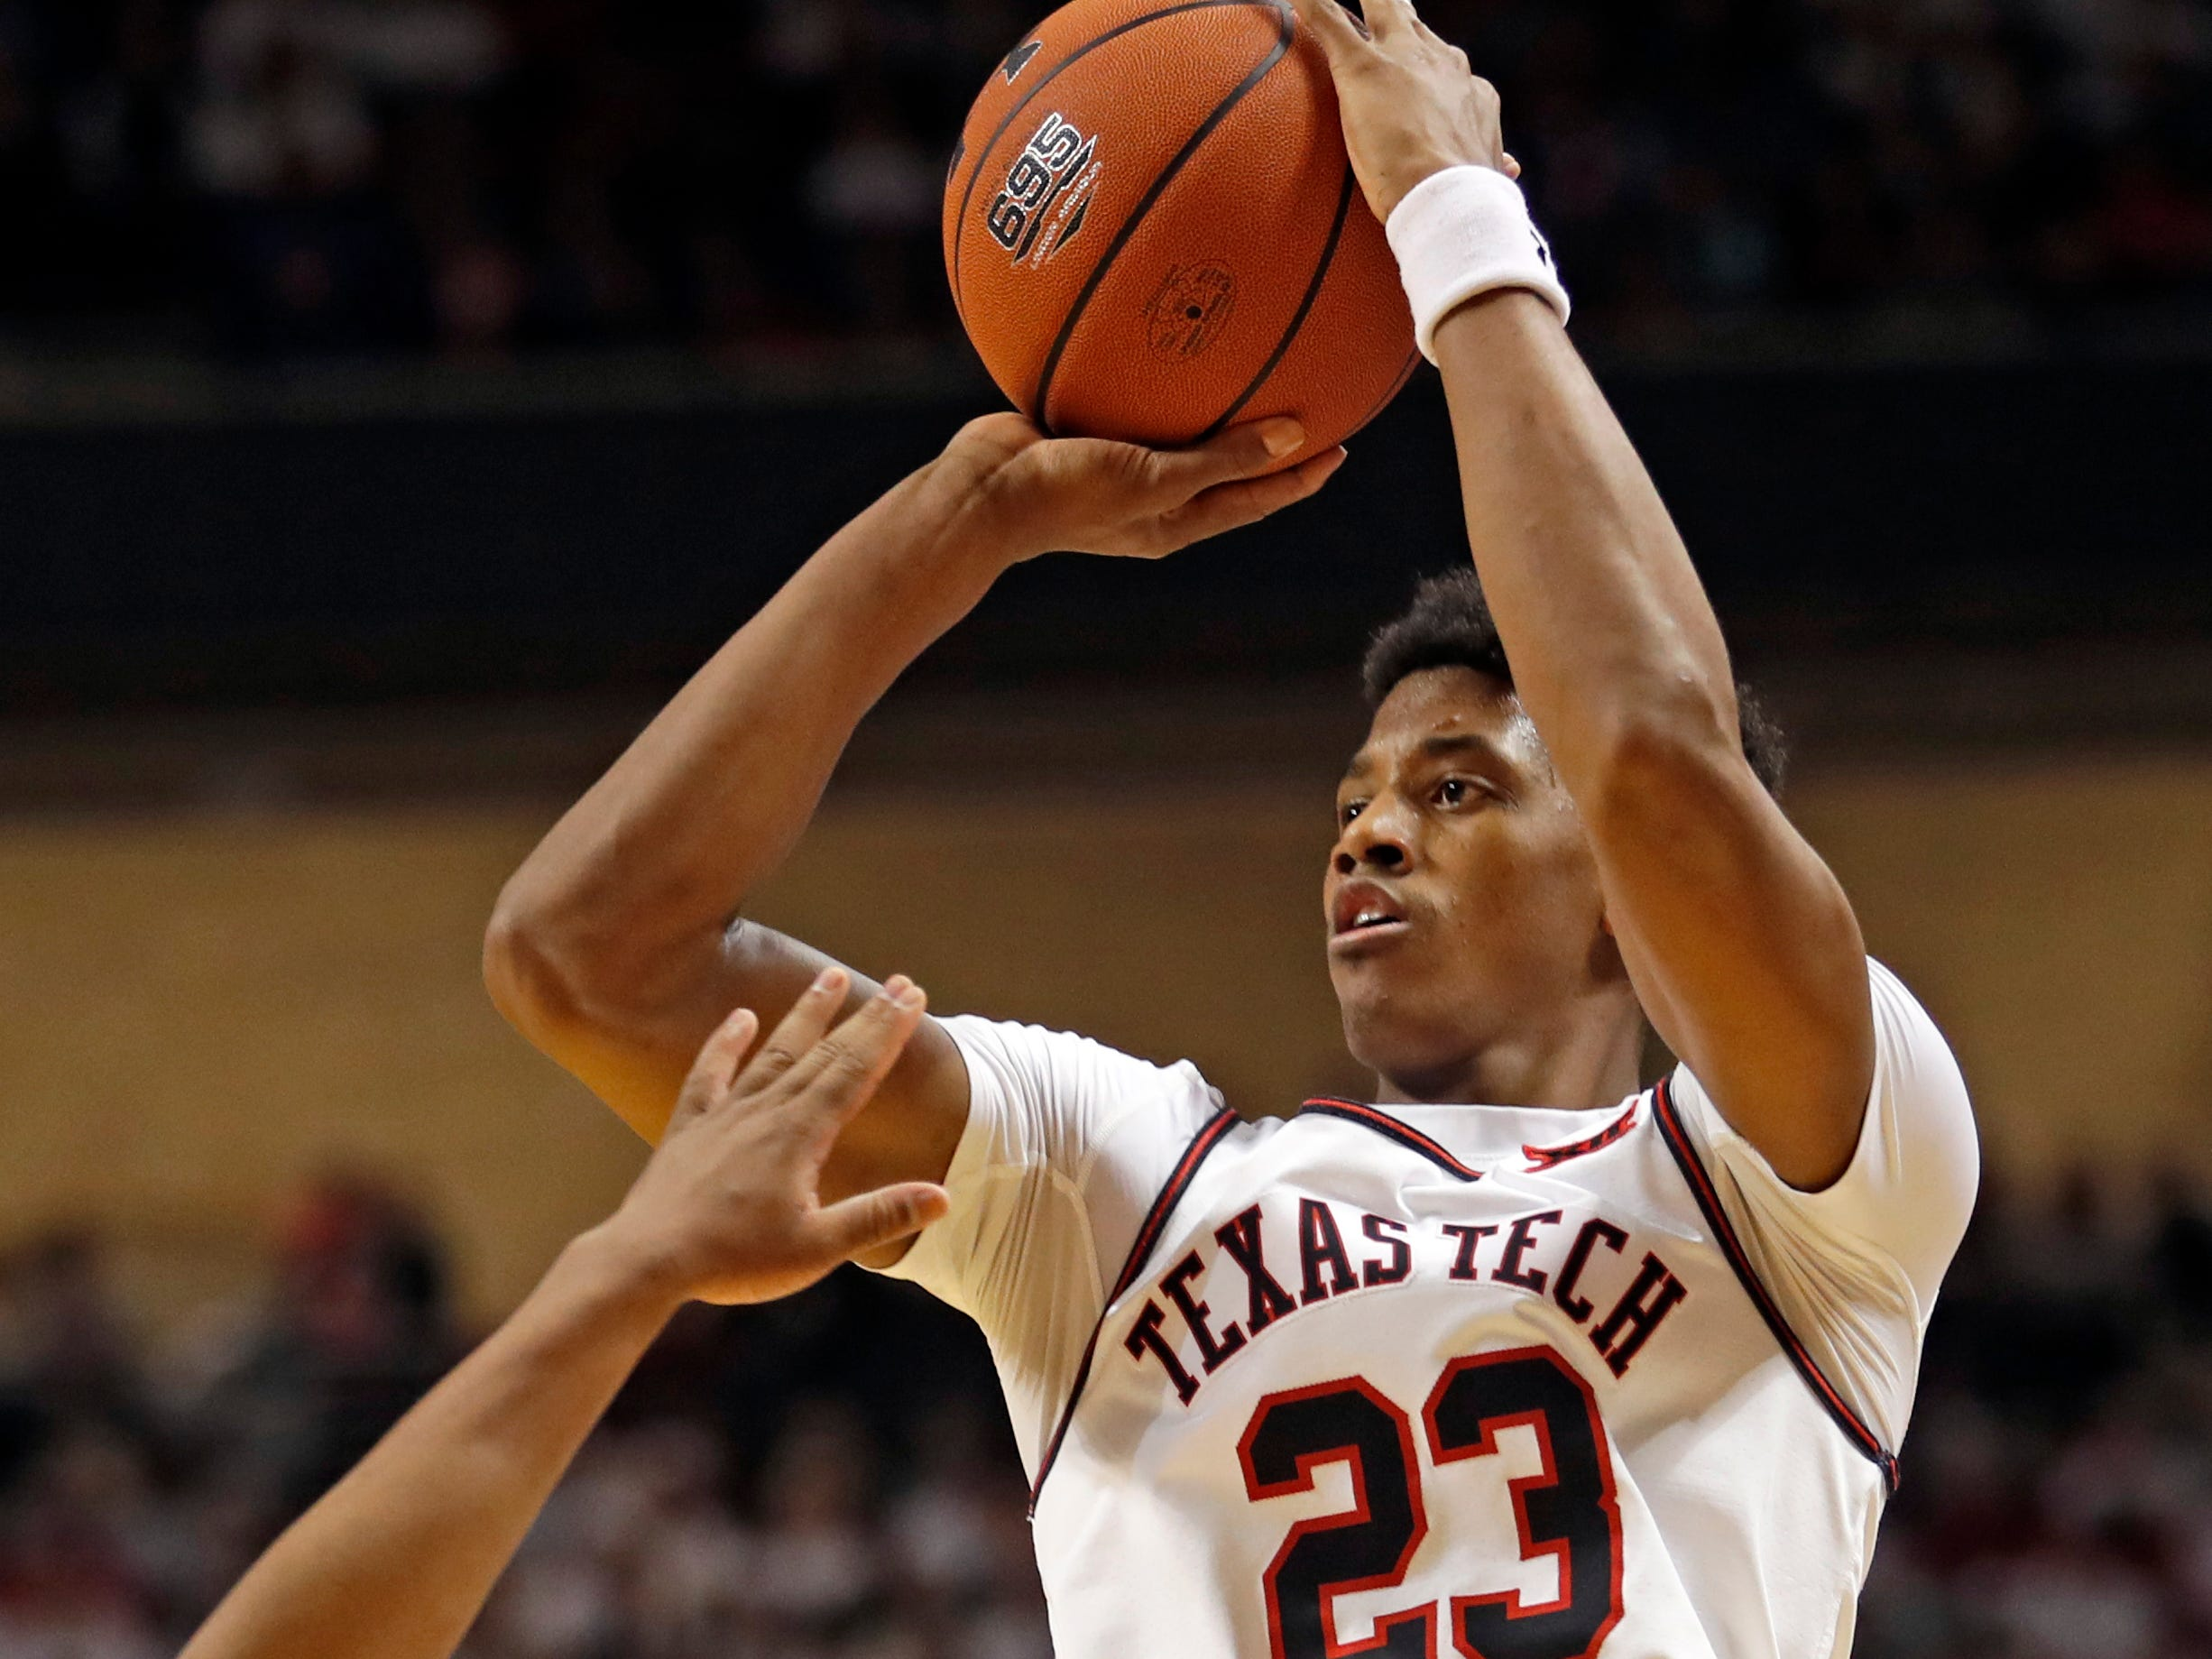 Texas Tech's Jarrett Culver (23) shoots over Kansas' Charlie Moore (2) during the first half of an NCAA college basketball game Saturday, Feb. 23, 2019, in Lubbock, Texas. (AP Photo/Brad Tollefson)